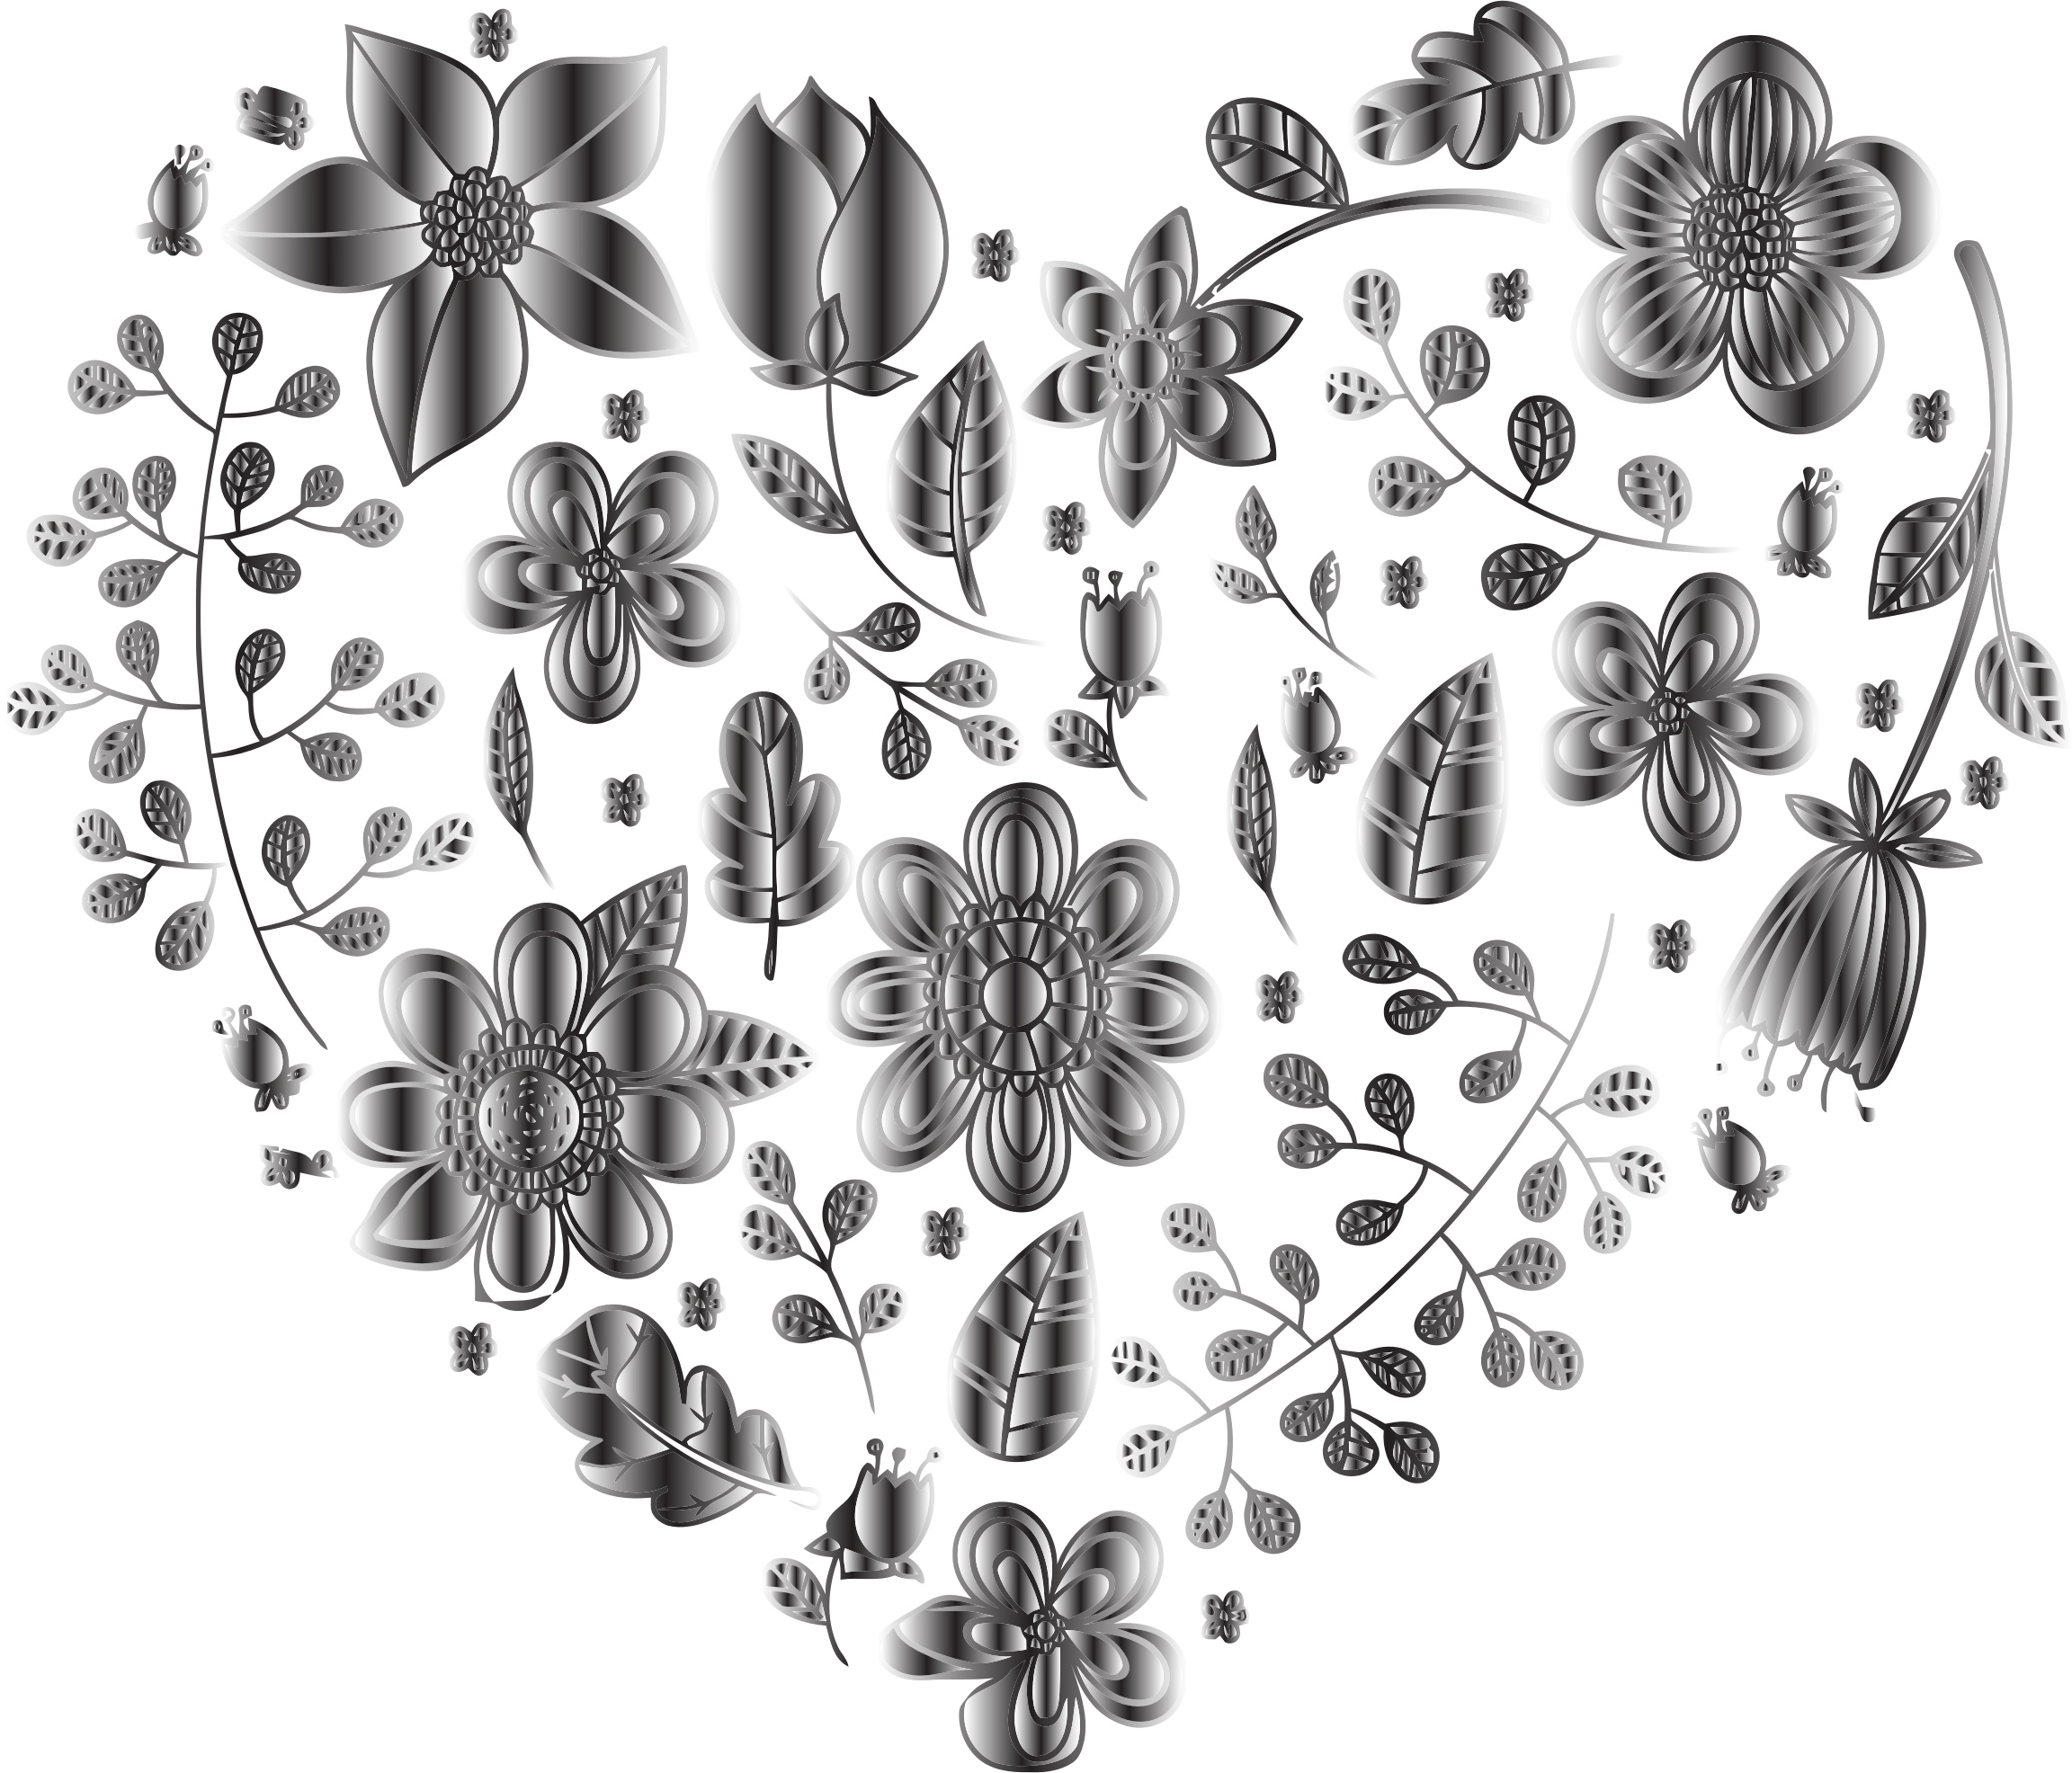 Grayscale Floral Heart 2 No Background by GDJ